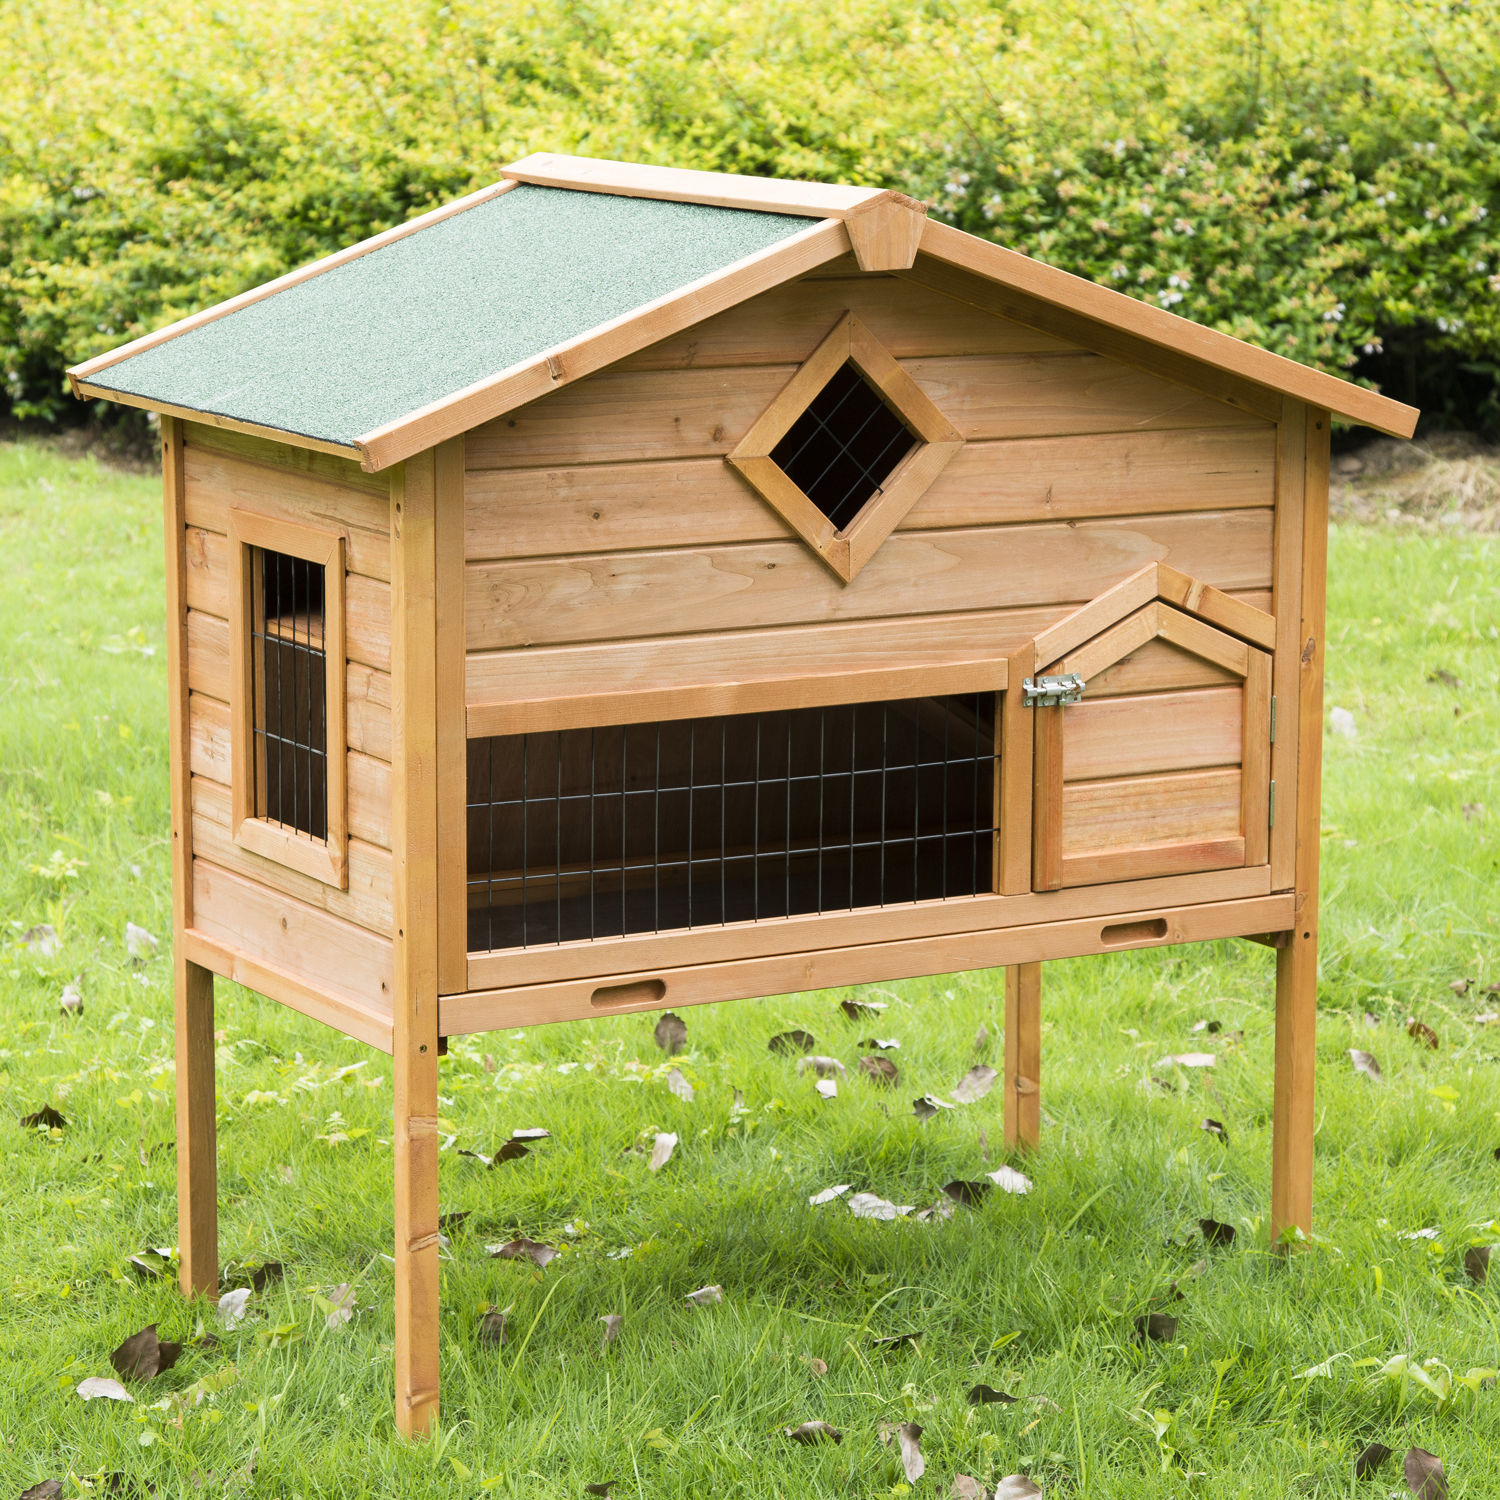 coop hutch the life furlife fur warehouse p wooden hutches chicken